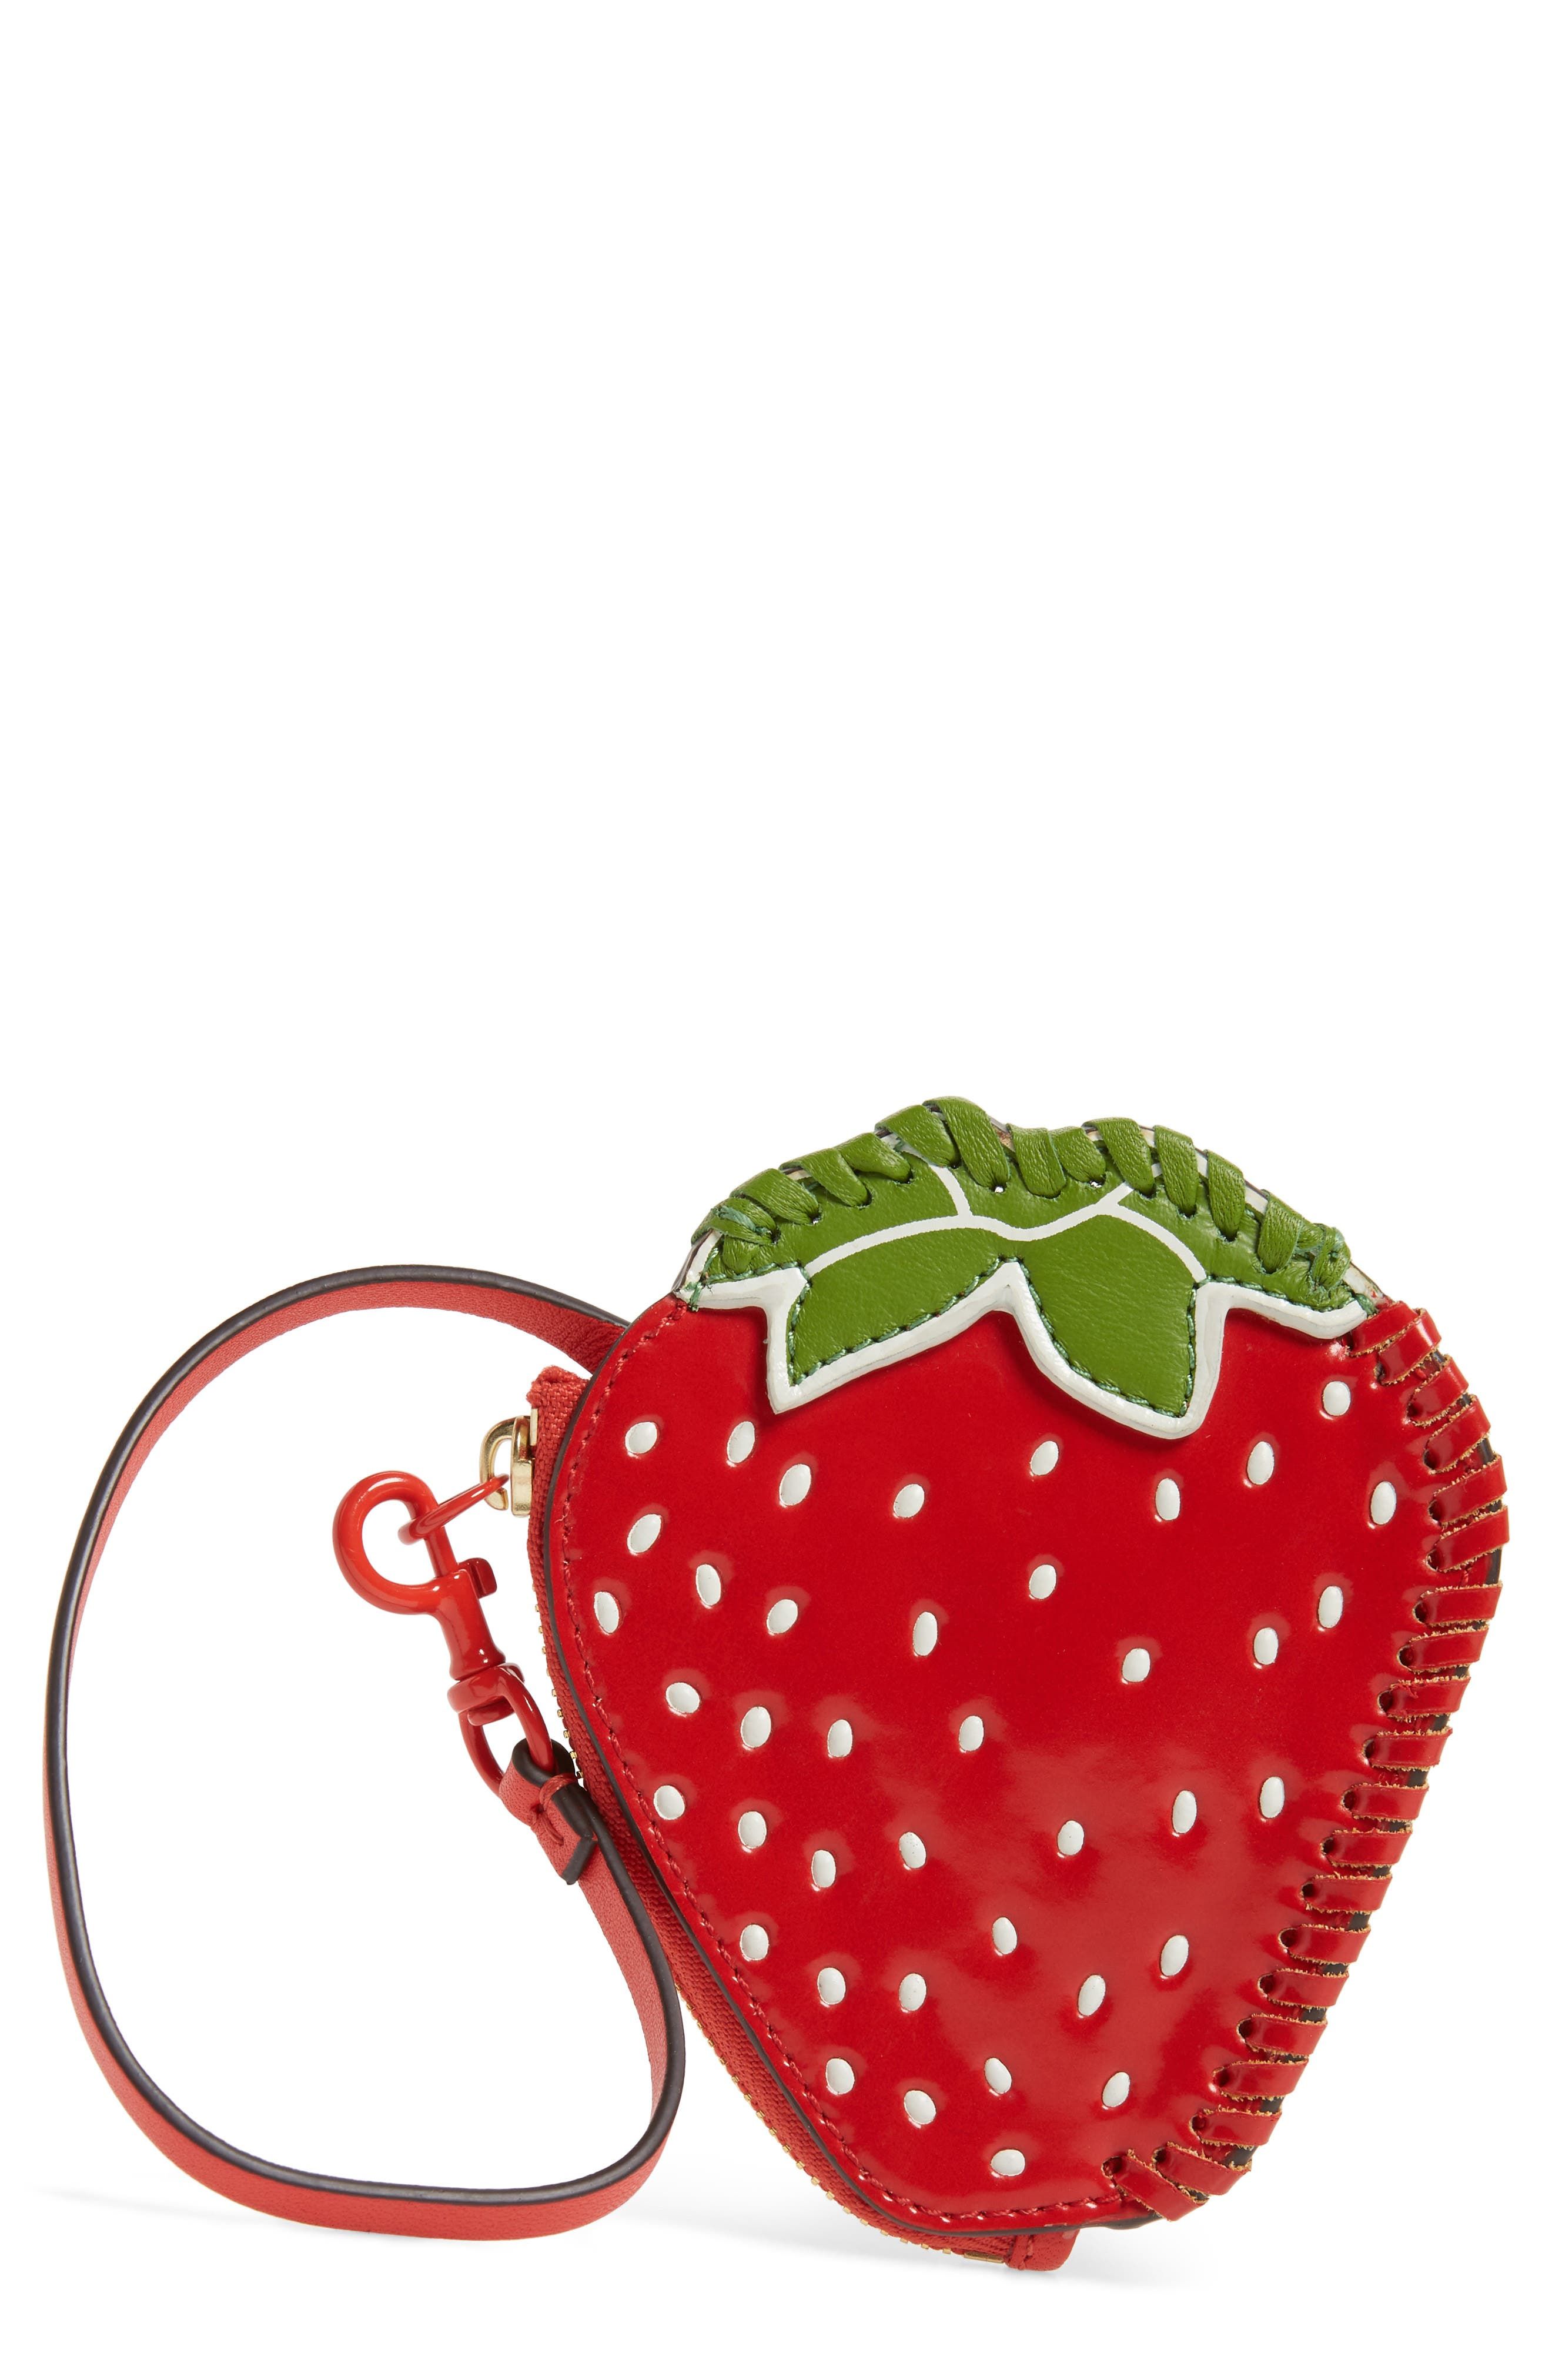 Strawberry Leather Coin Pouch,                             Main thumbnail 1, color,                             Poppy Orange / Leaf Green